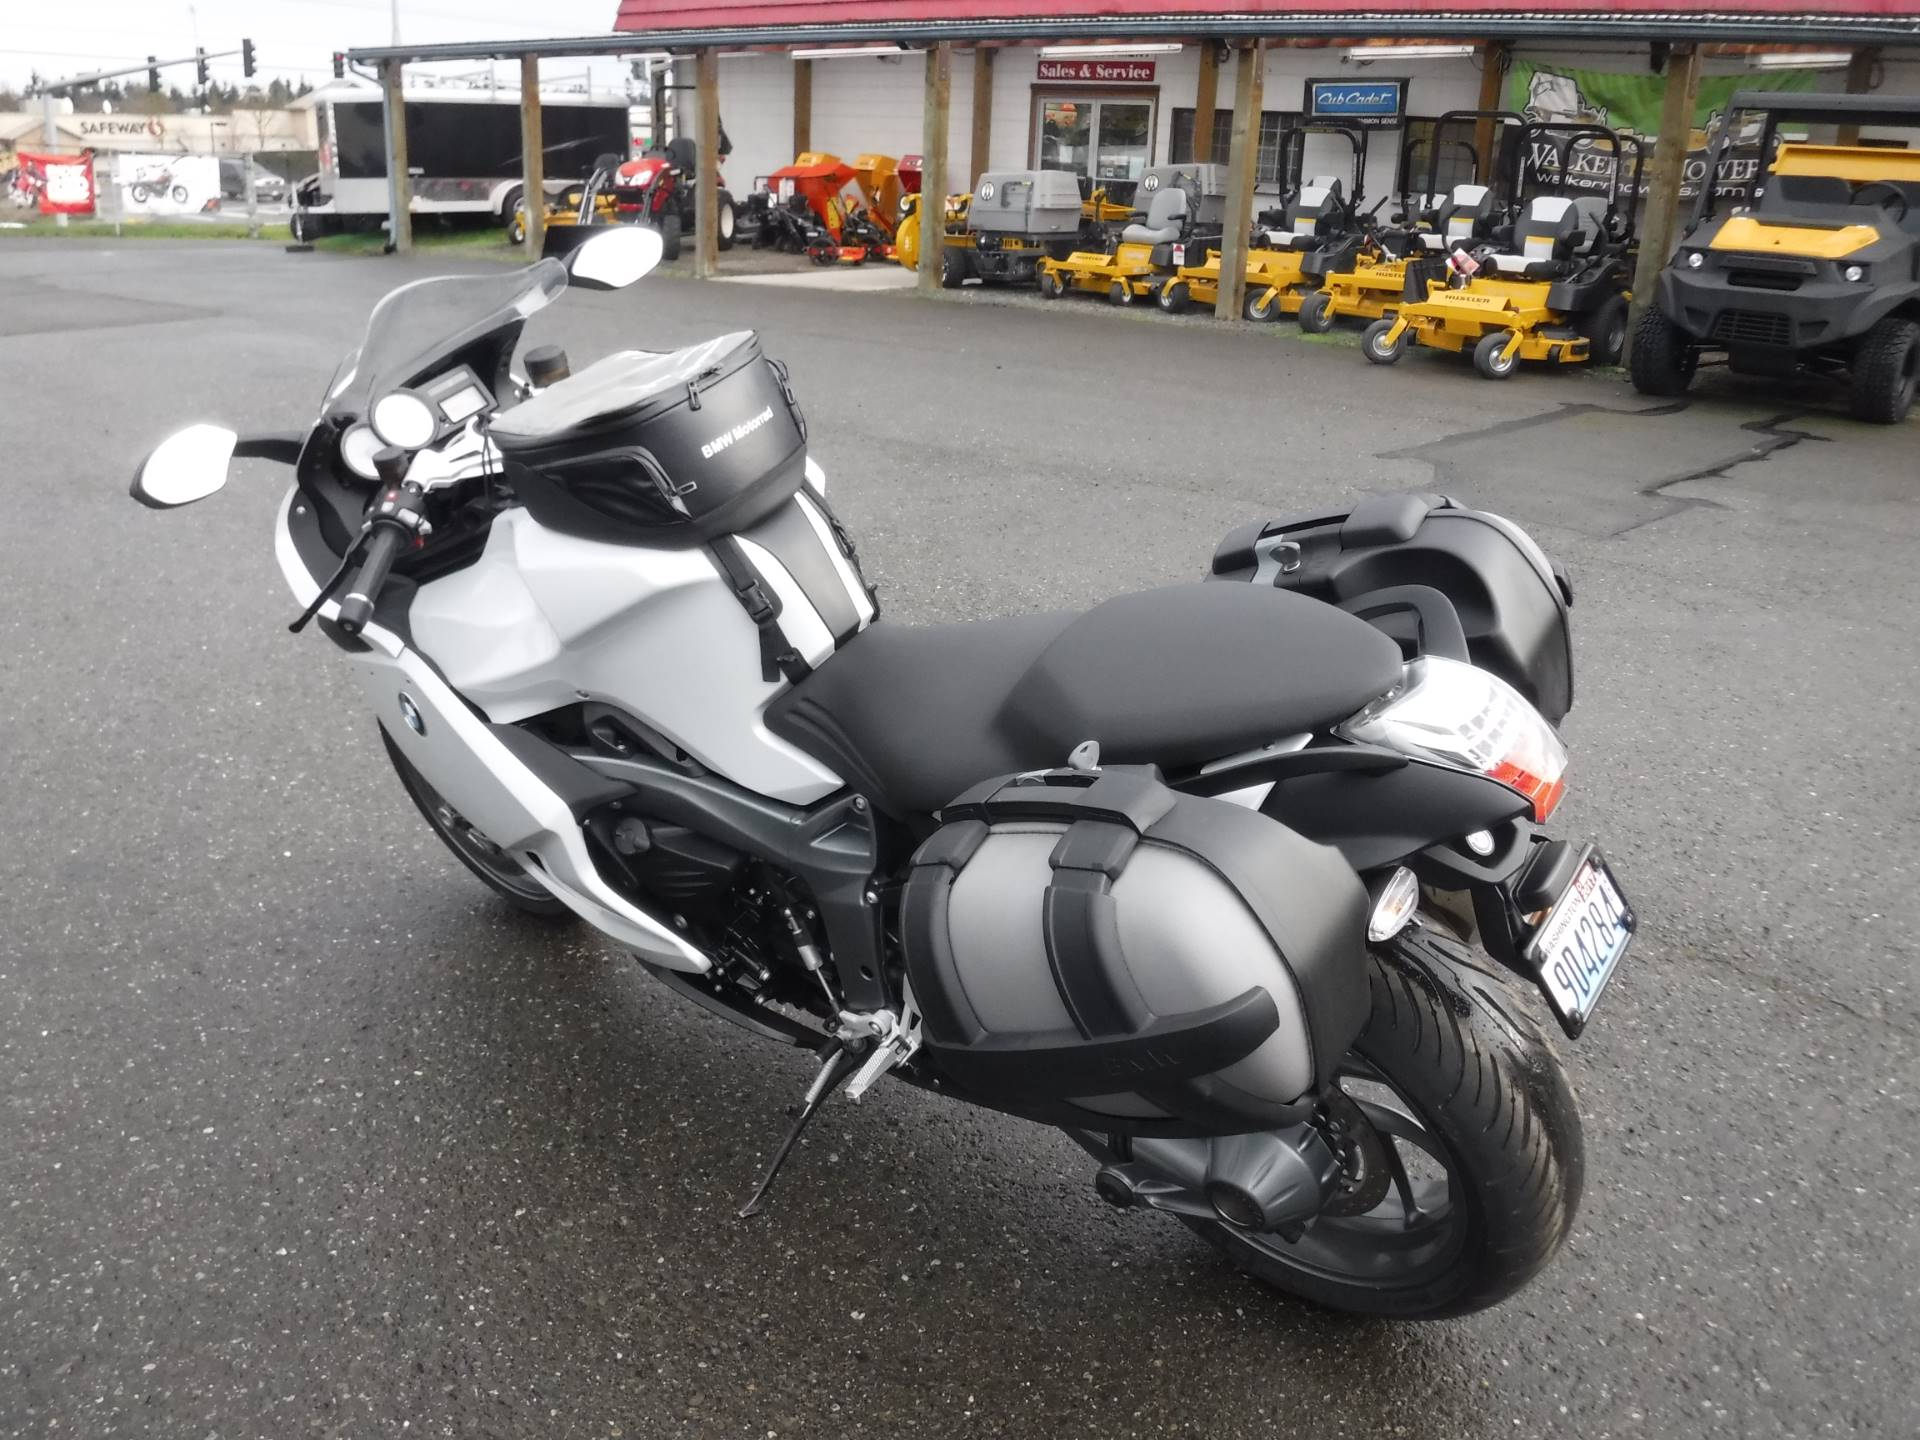 2009 BMW K 1300 S in Port Angeles, Washington